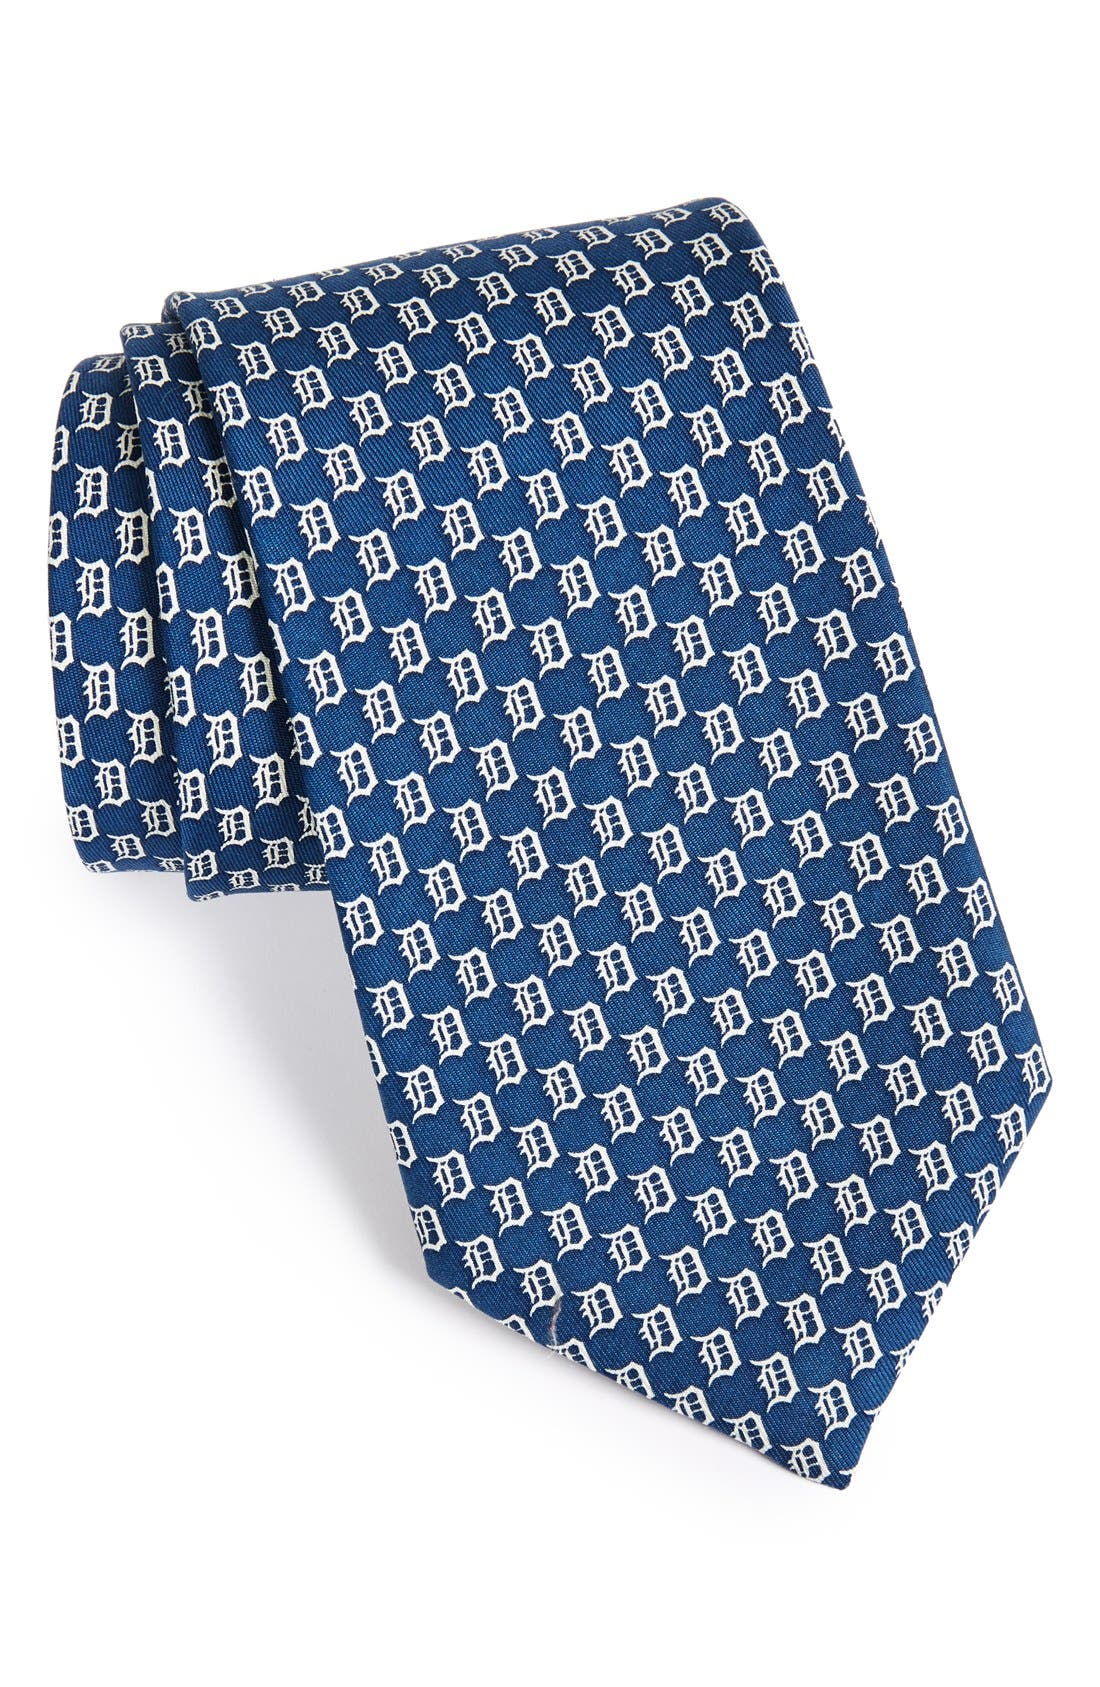 'Detroit Tigers - MLB' Woven Silk Tie,                             Main thumbnail 1, color,